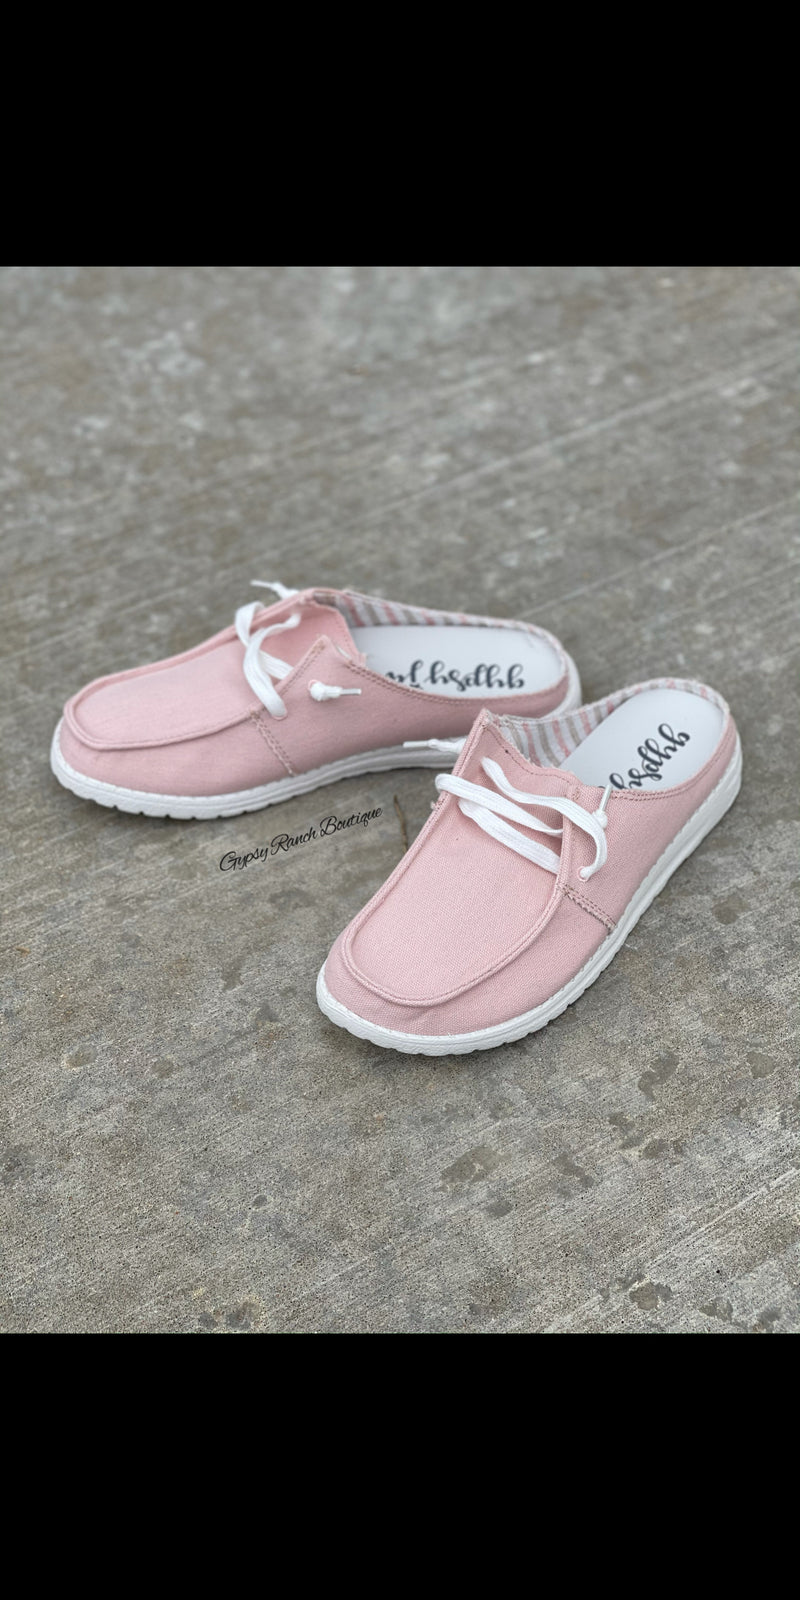 Sailor Gypsy Jazz BLUSH Slip On Shoes